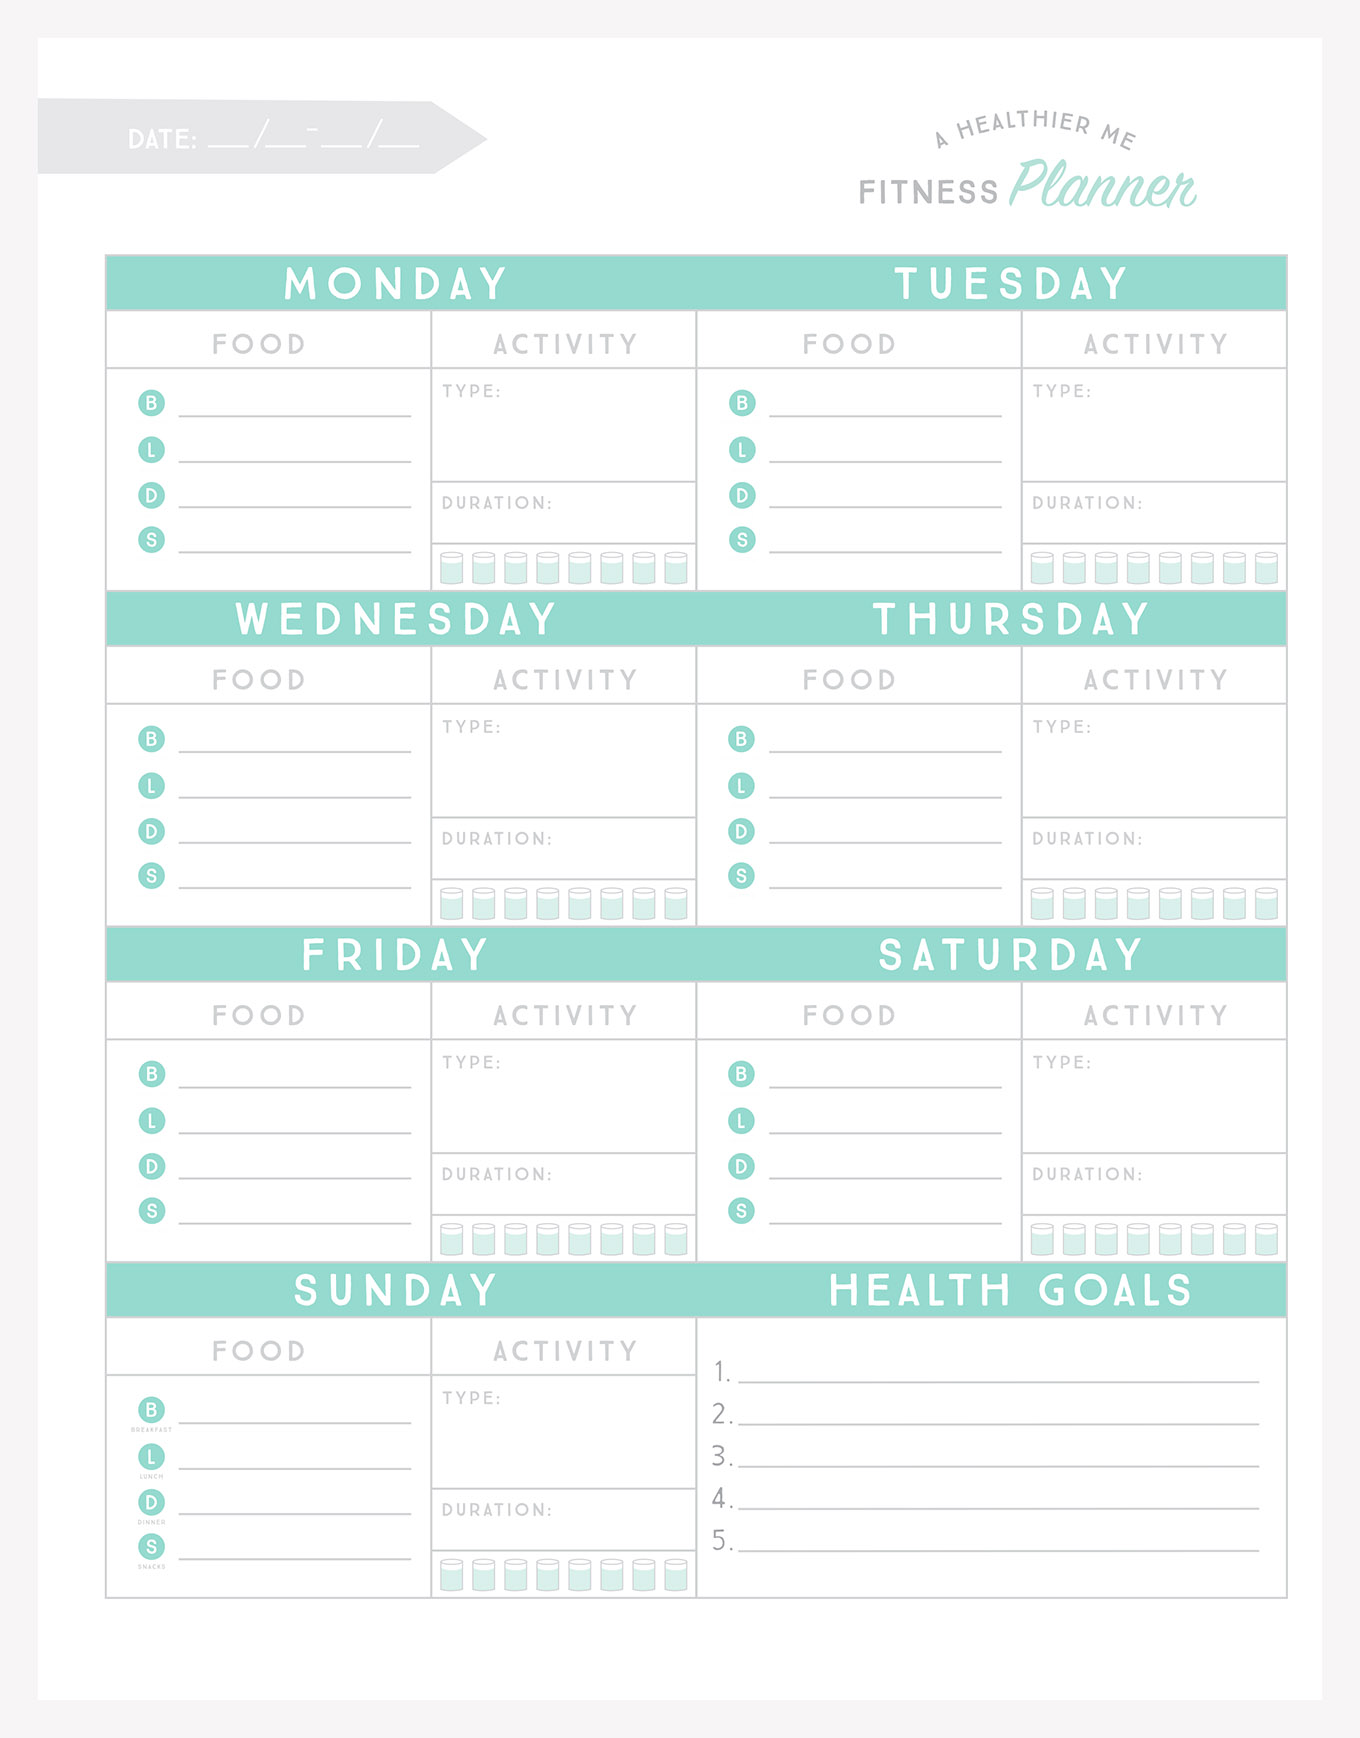 image regarding Free Printable Fitness Planner known as Cost-free Printable Exercise Planner